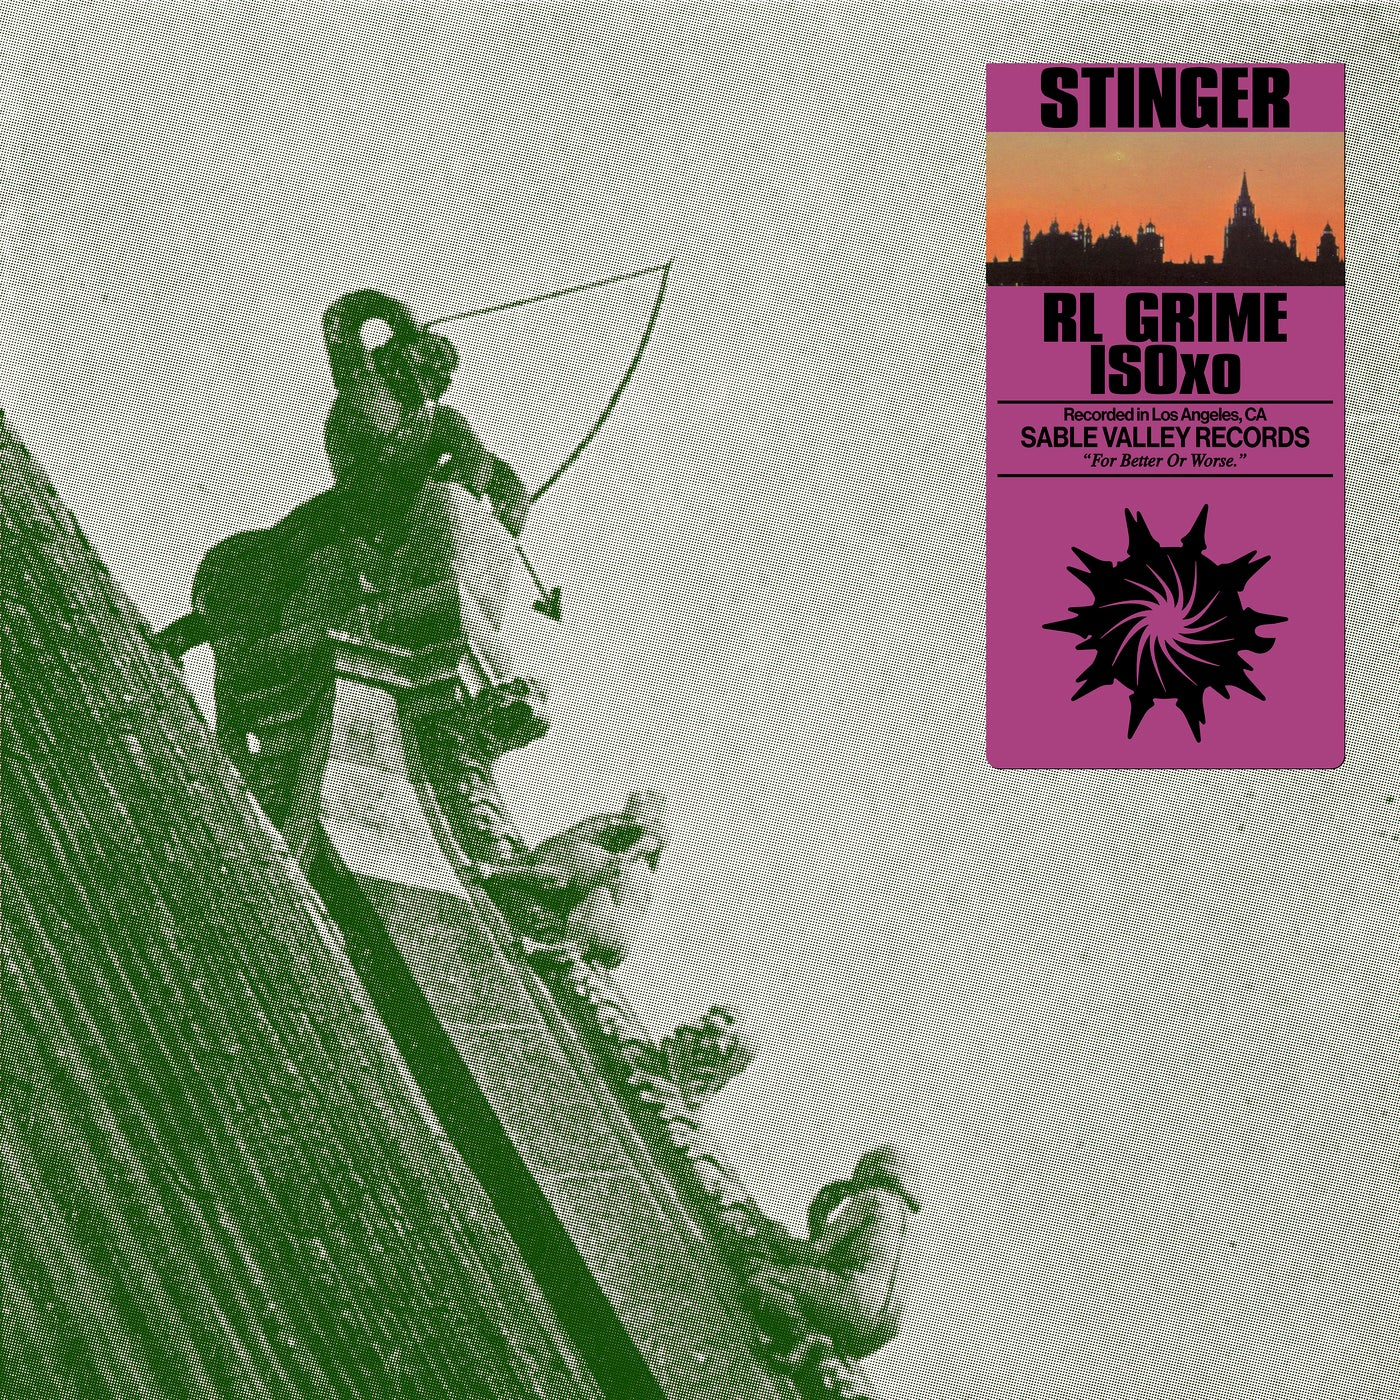 Stinger (Original Mix)